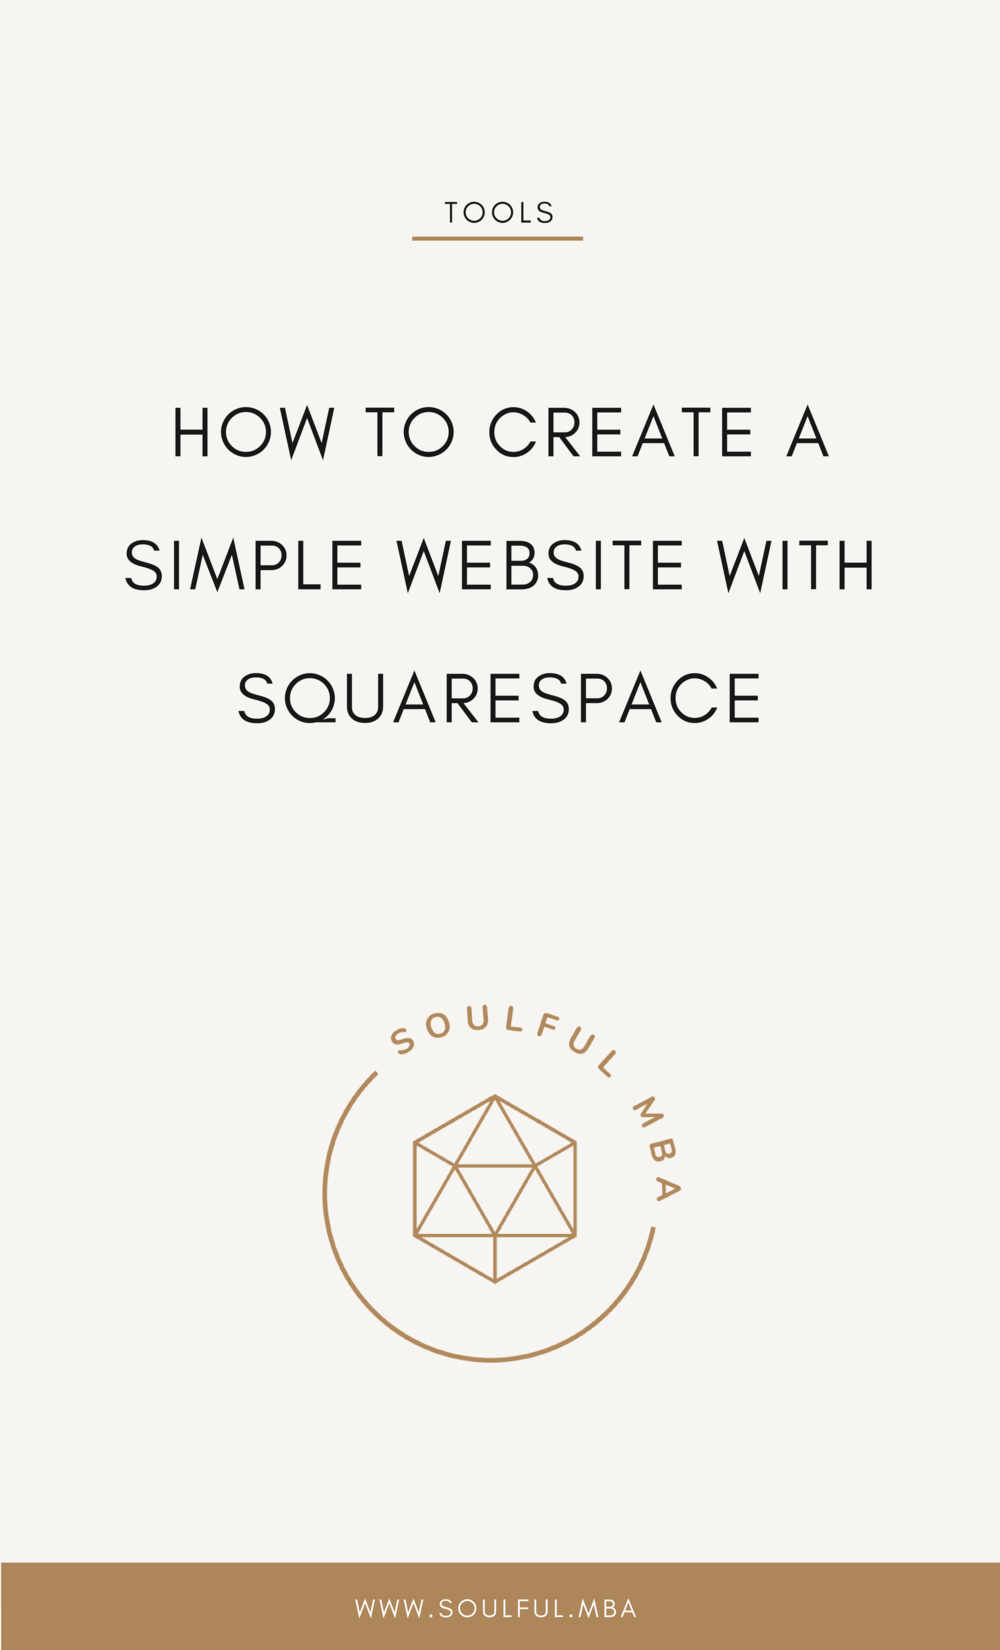 Soulful MBA Blog how to create a website with squarespace.png